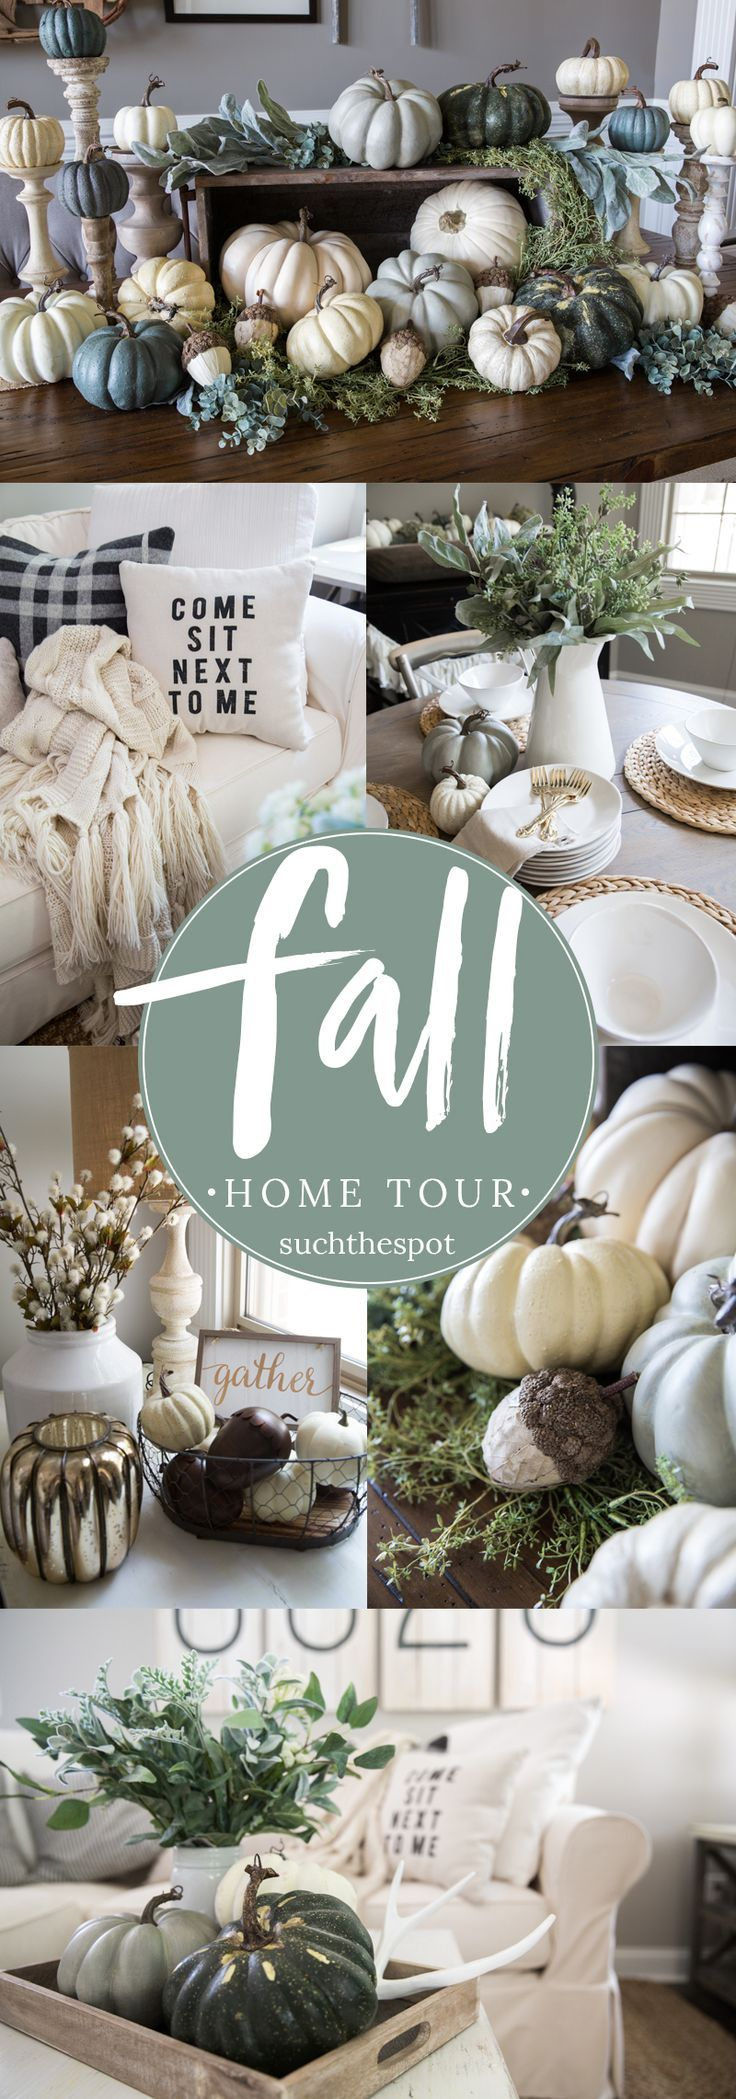 Fall Decor Ideas and Inspiration for Using Neutral Colors | Fall Home Tour